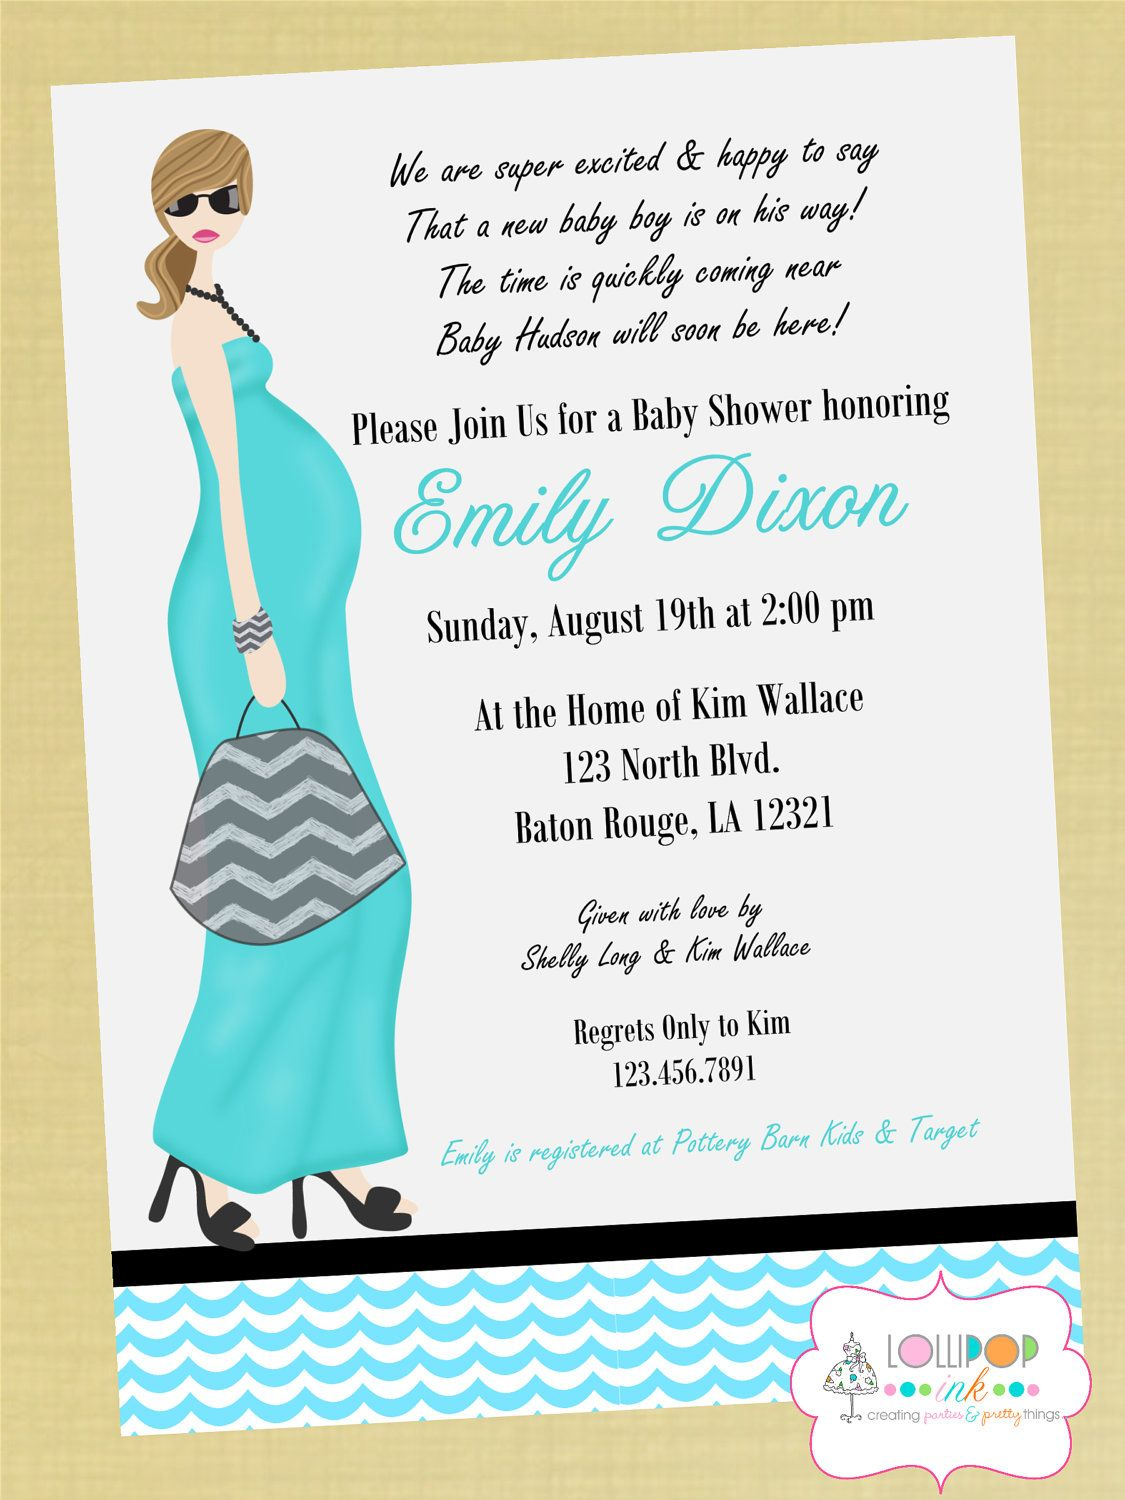 Baby Boy Shower Quotes For Invitations Baby Shower Invitation Wording For Bo Baby Shower Invitation Poems Baby Shower Invitation Wording Baby Boy Invitations